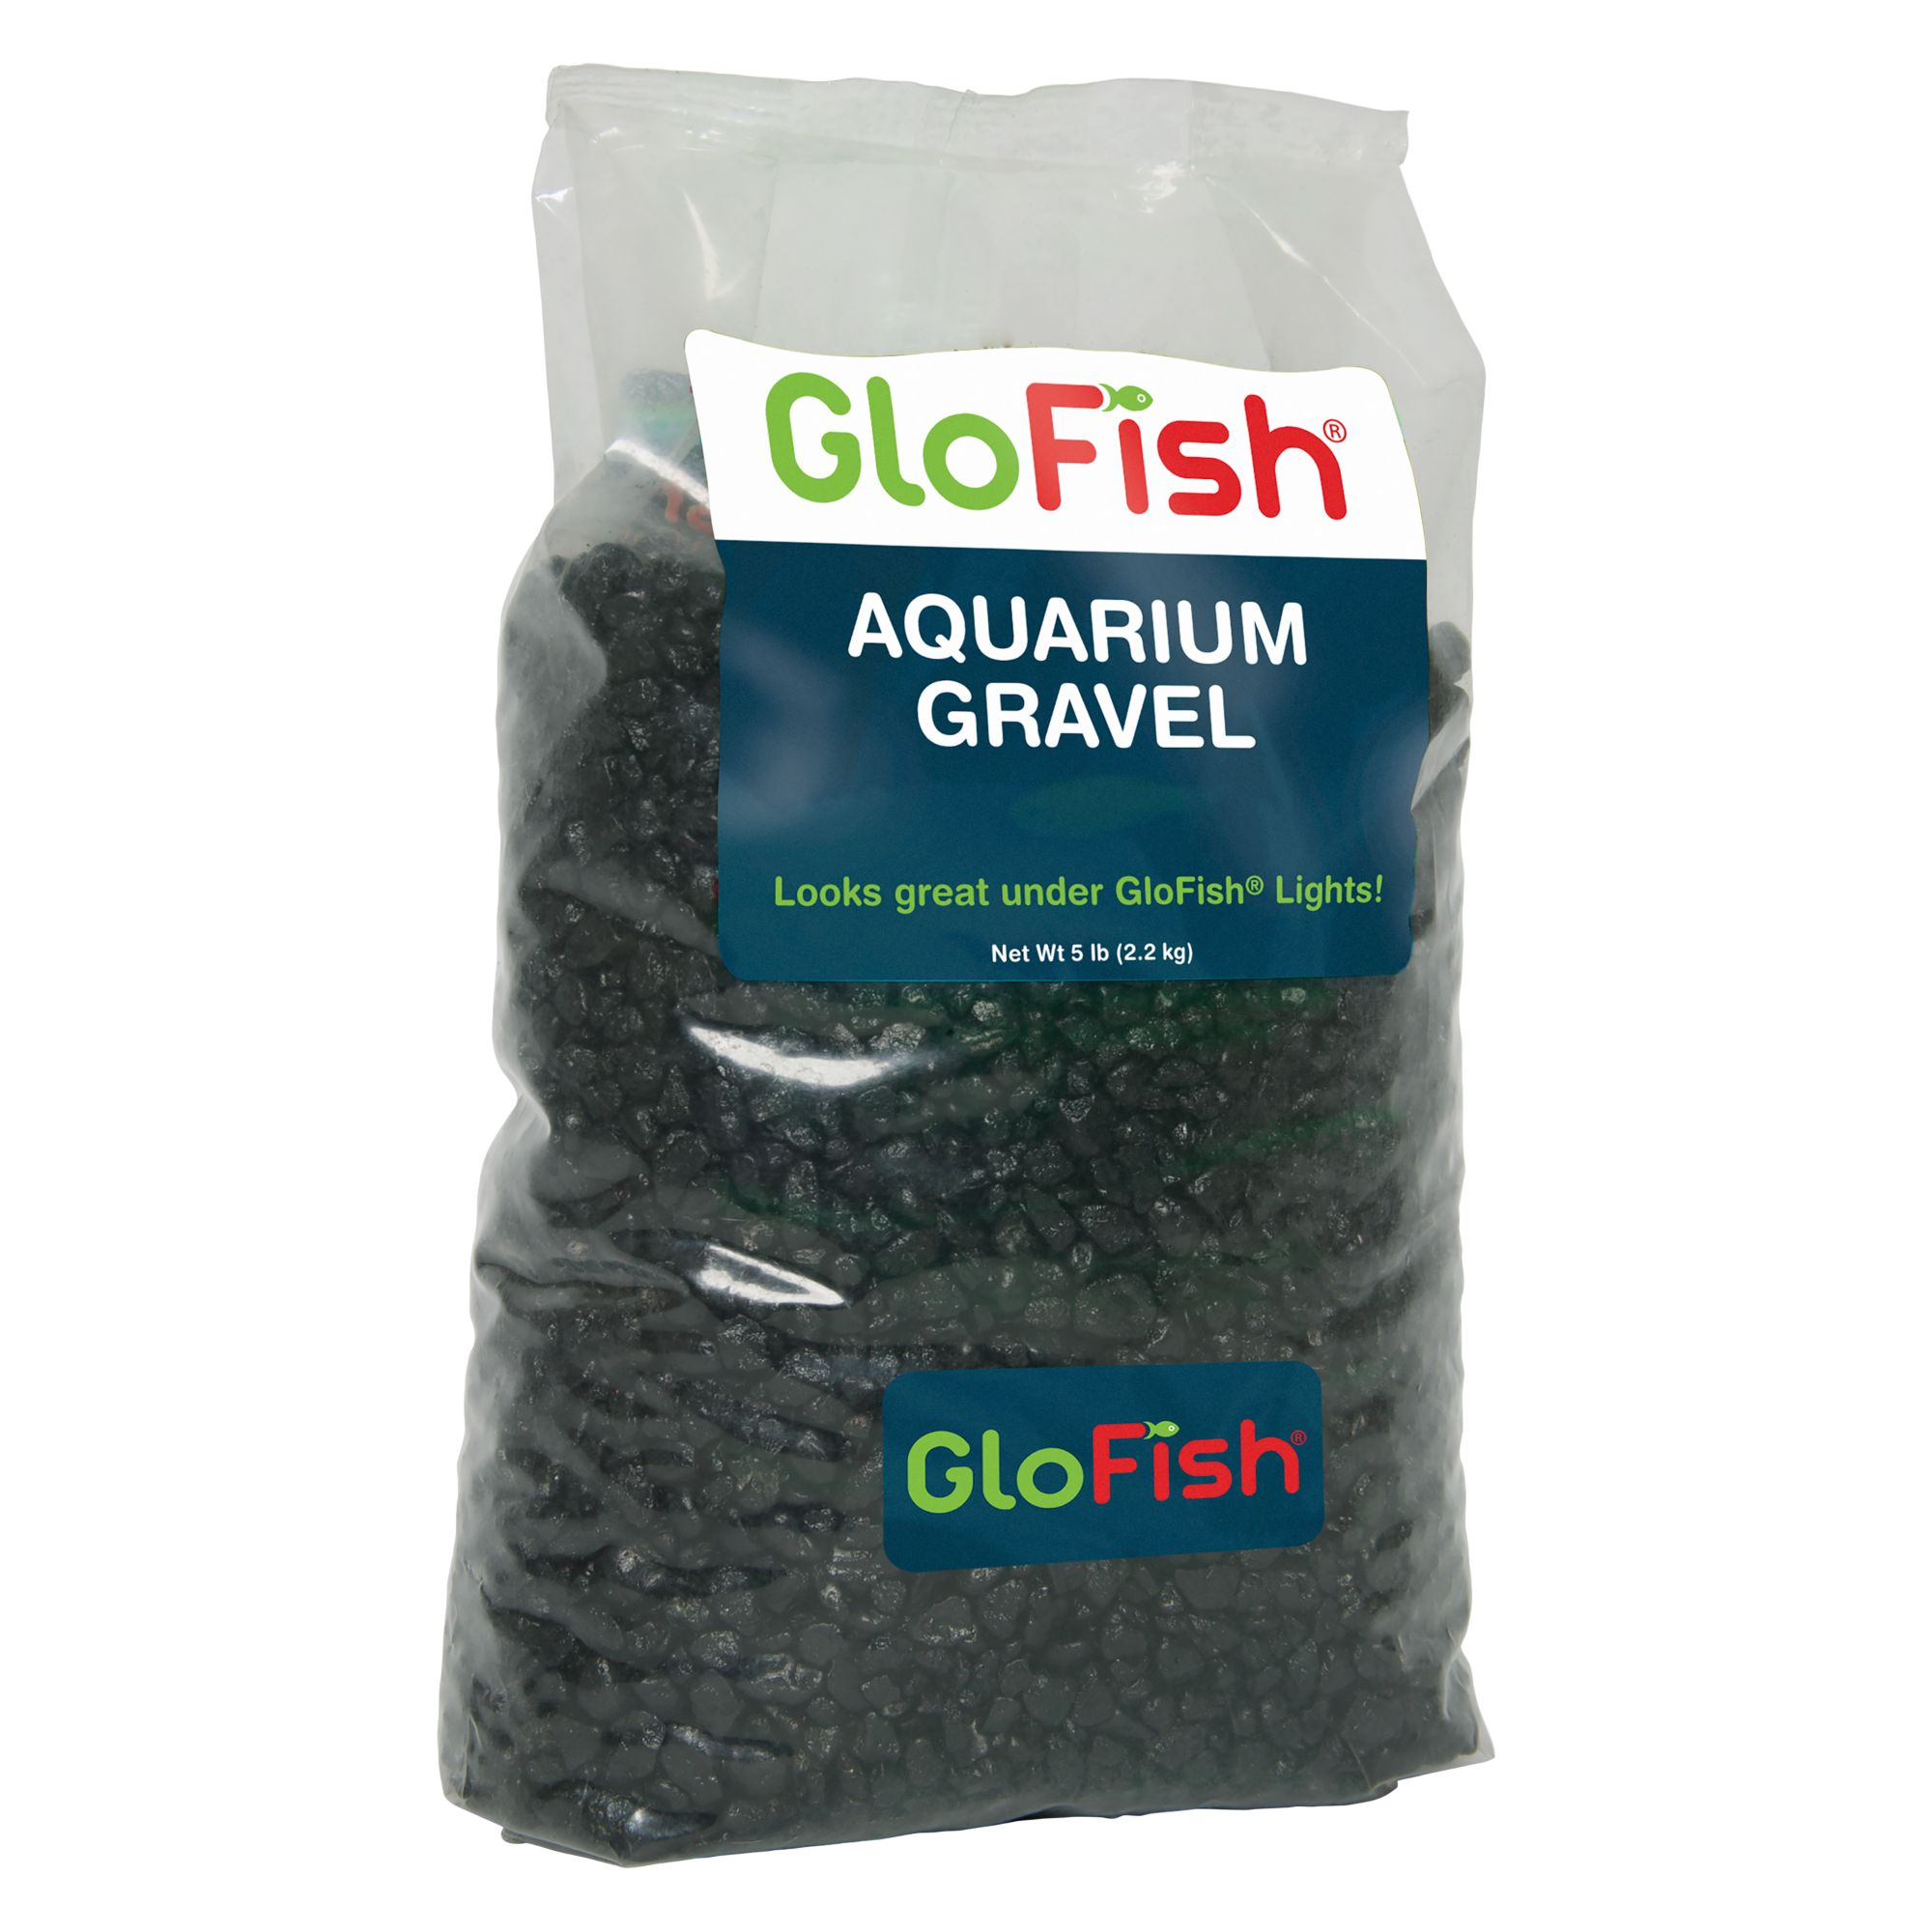 Glofish Aquarium Gravel Size 5 Lb Black